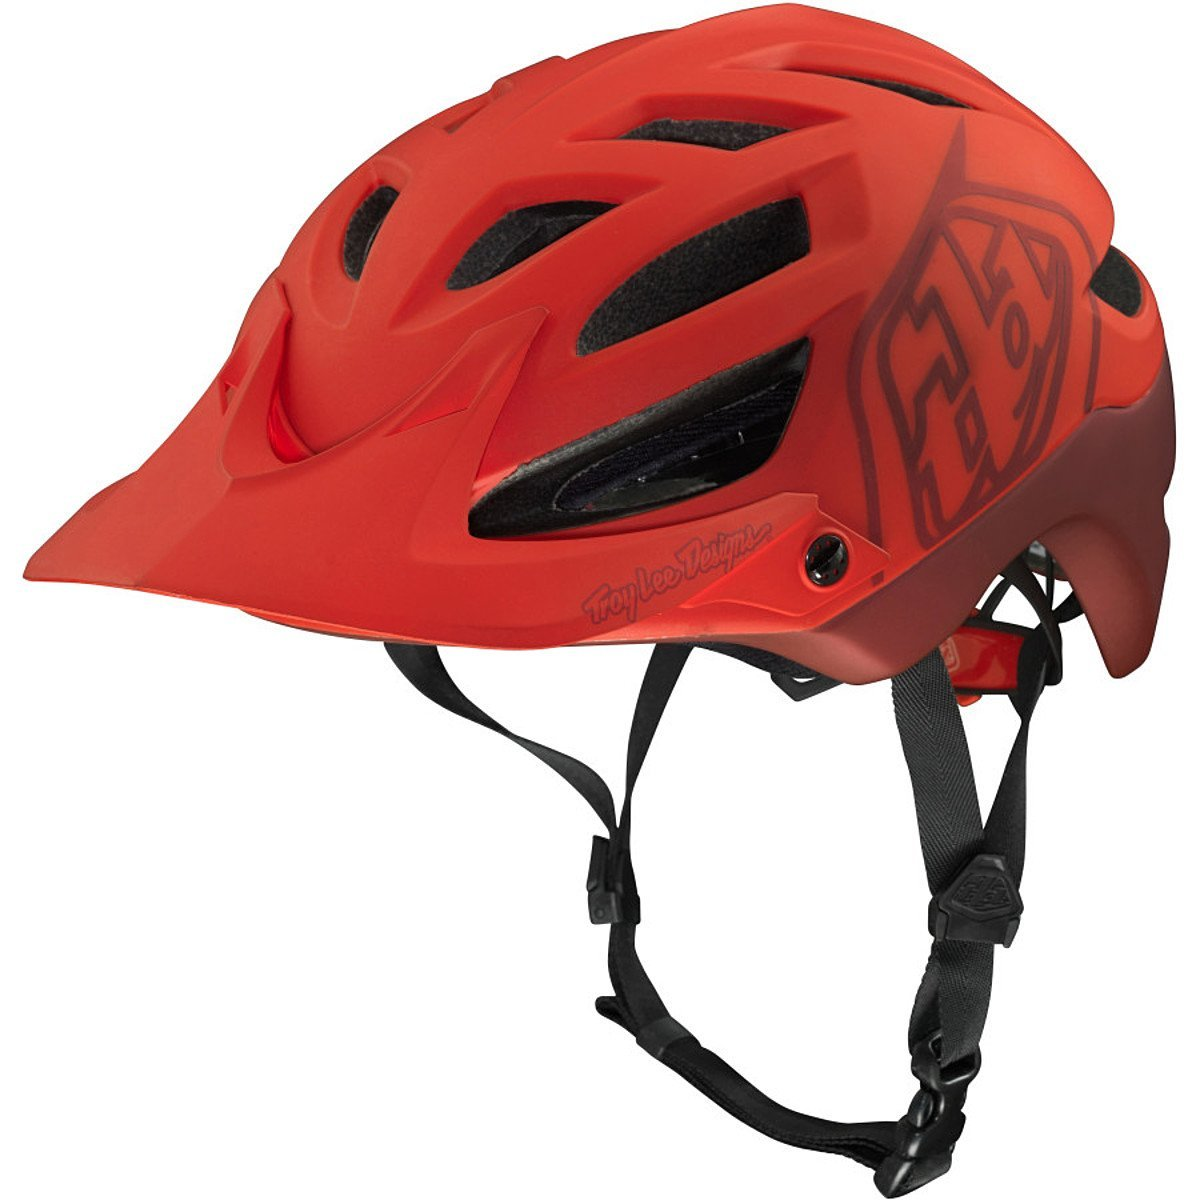 Red Troy Lee Designs Bicycle Helmets